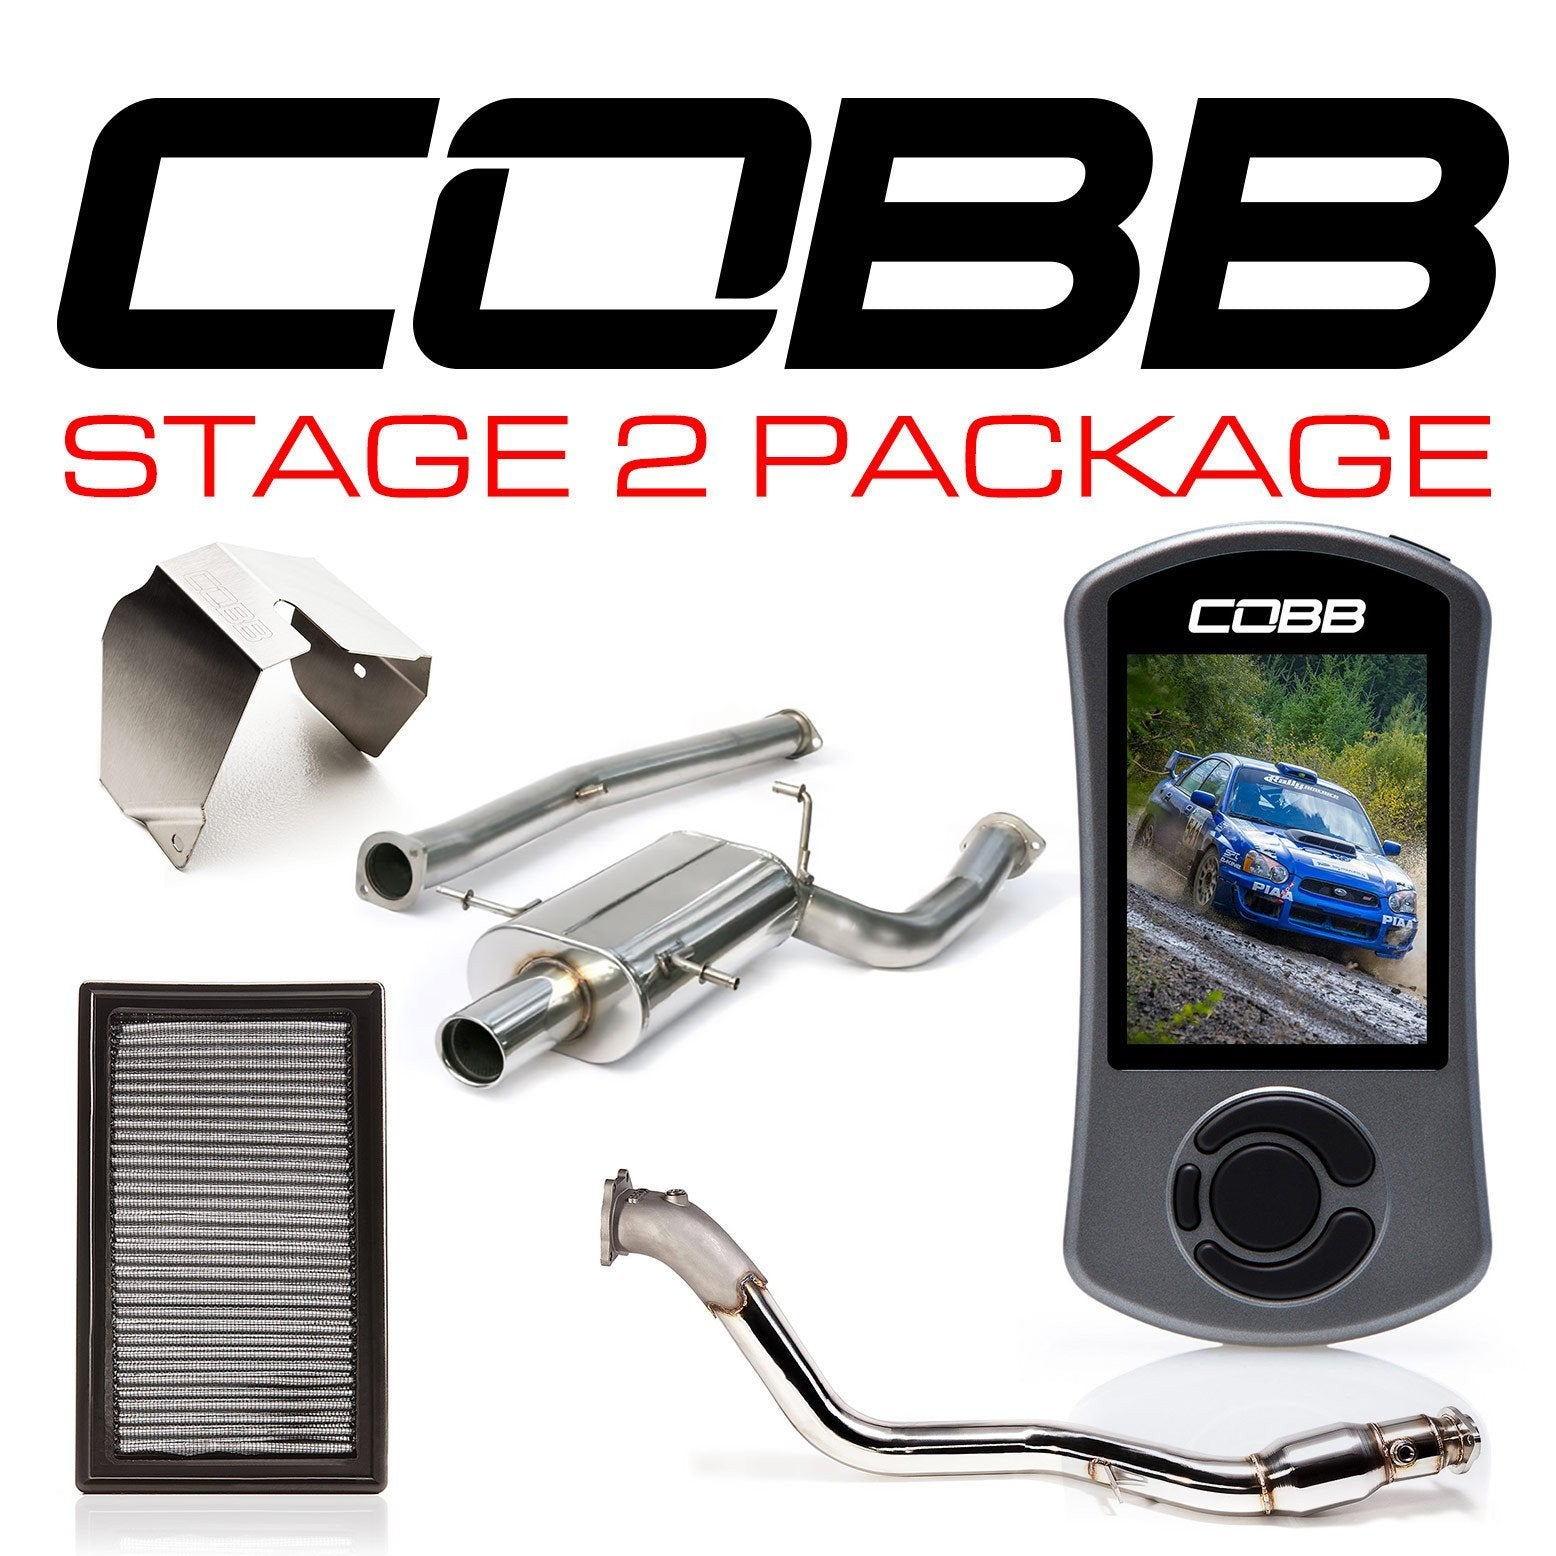 Cobb 04-05 STI Subaru Stage 2 Power Package - cobb613X12